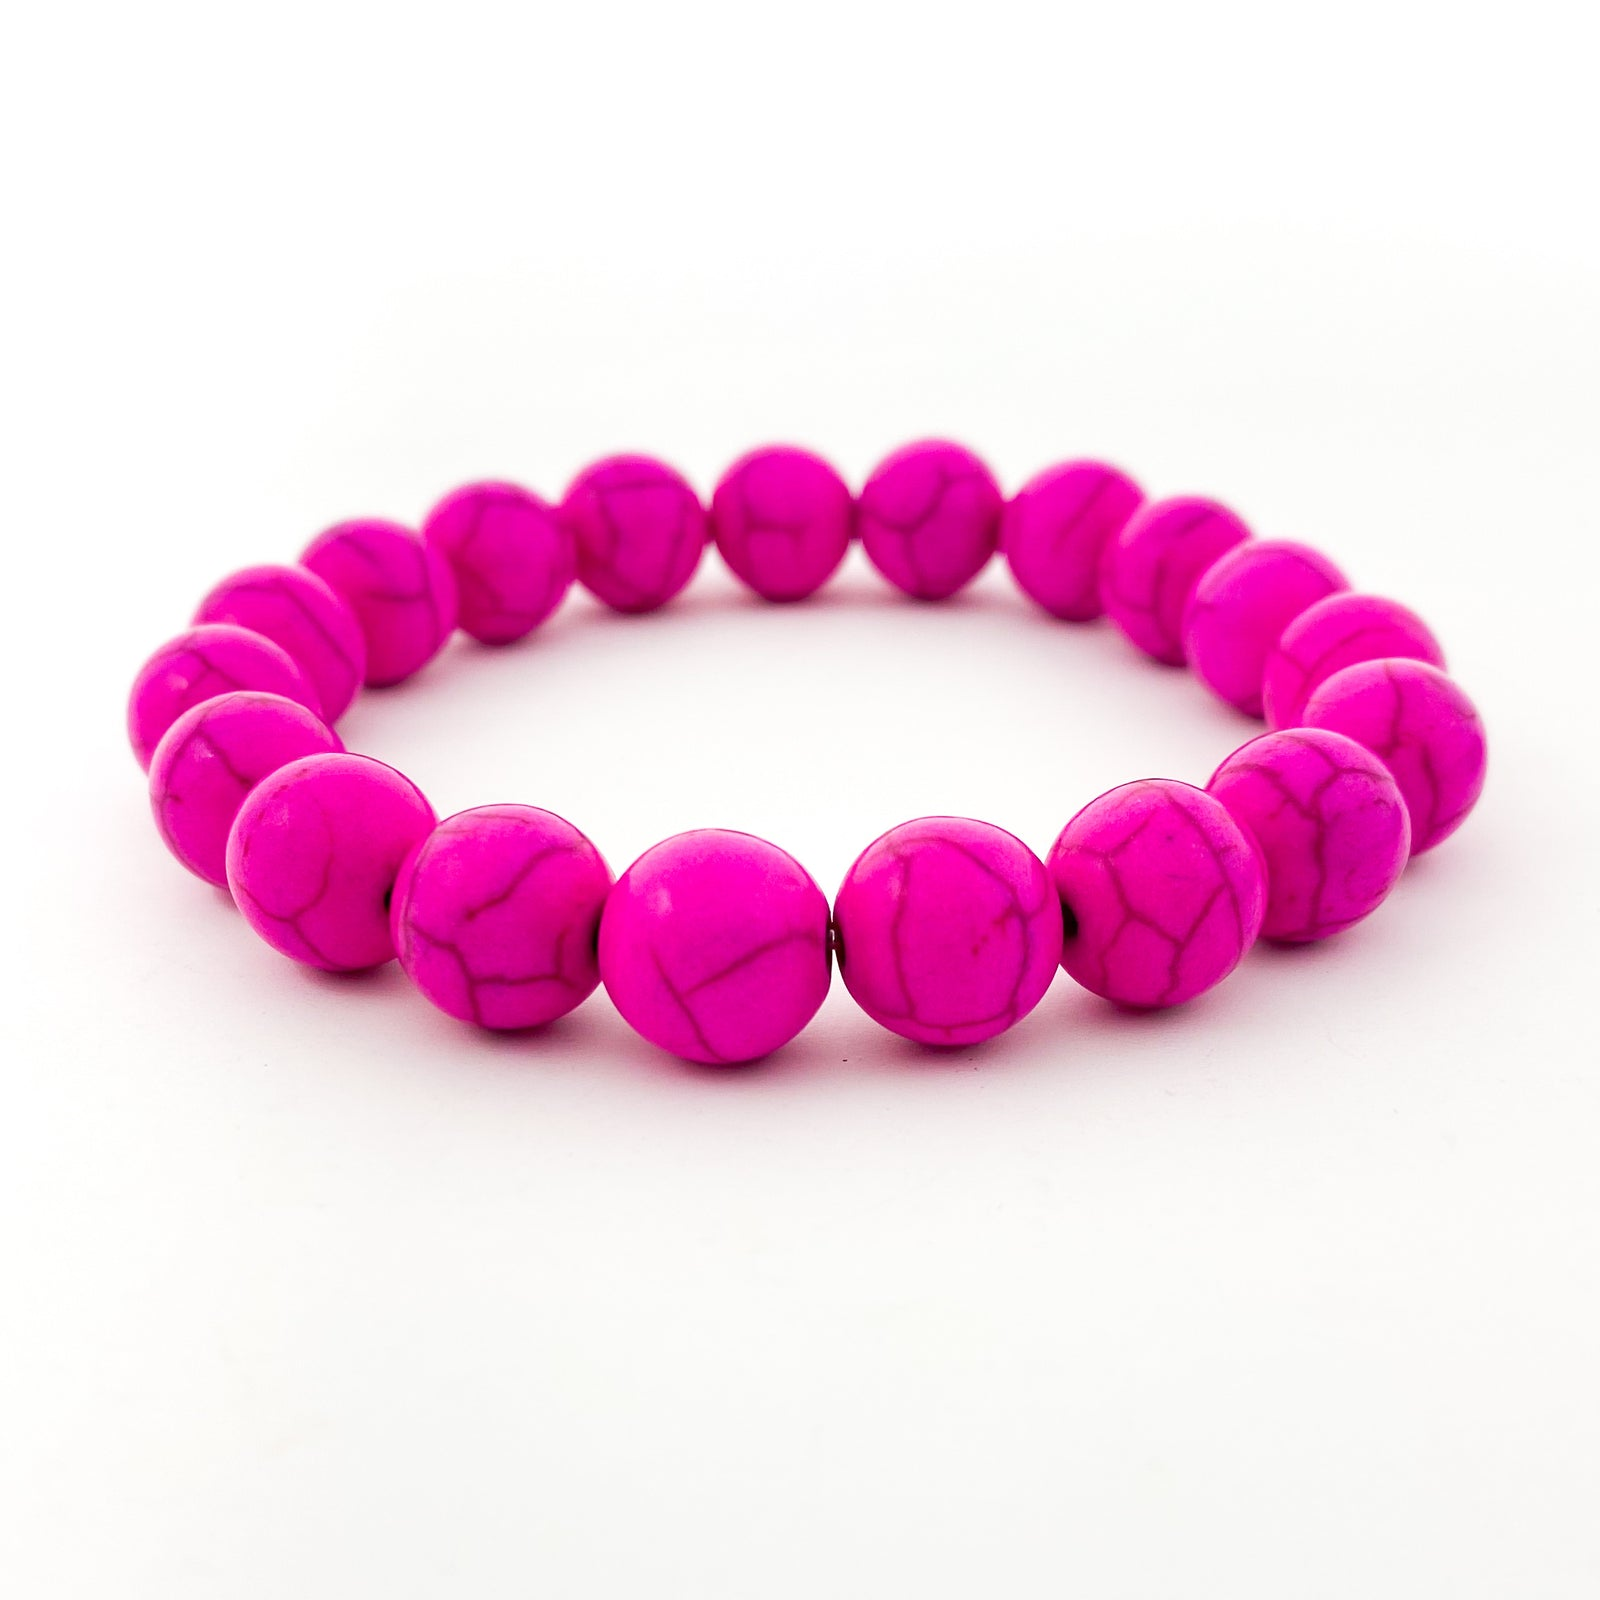 BRIGHT HOWLITE STONE BRACELETS | 10MM | STYLE OPTIONS